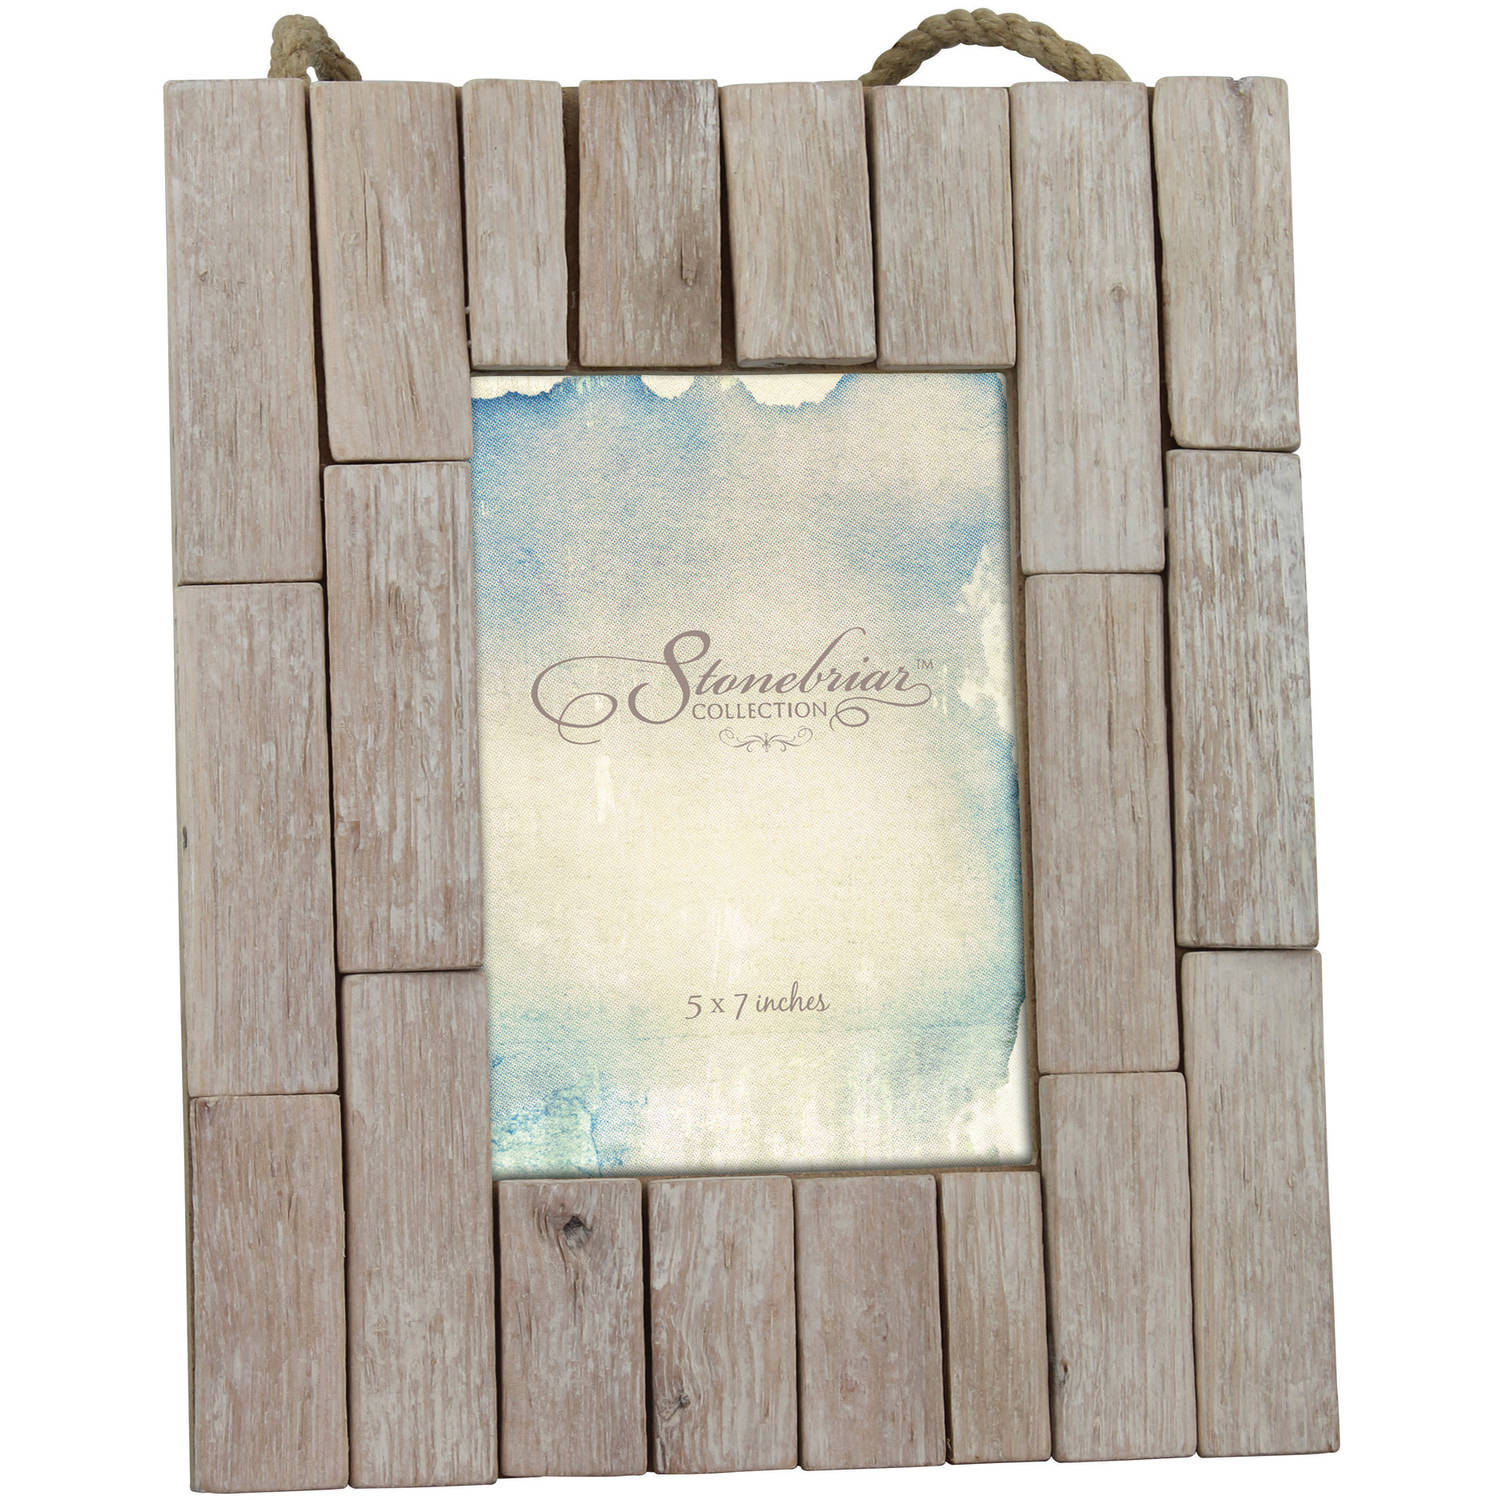 "Driftwood 5"" x 7"" Photo Frame with Rope Hanger"